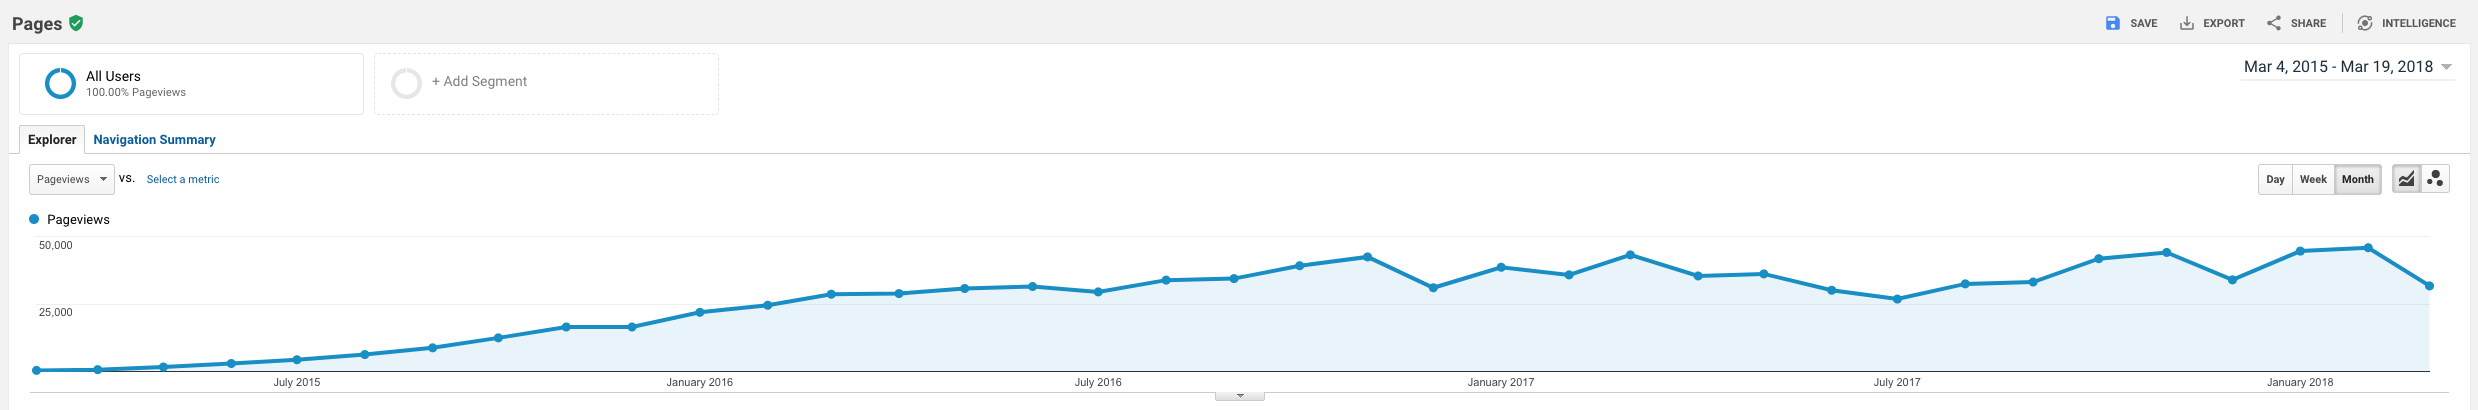 Blog growth curve